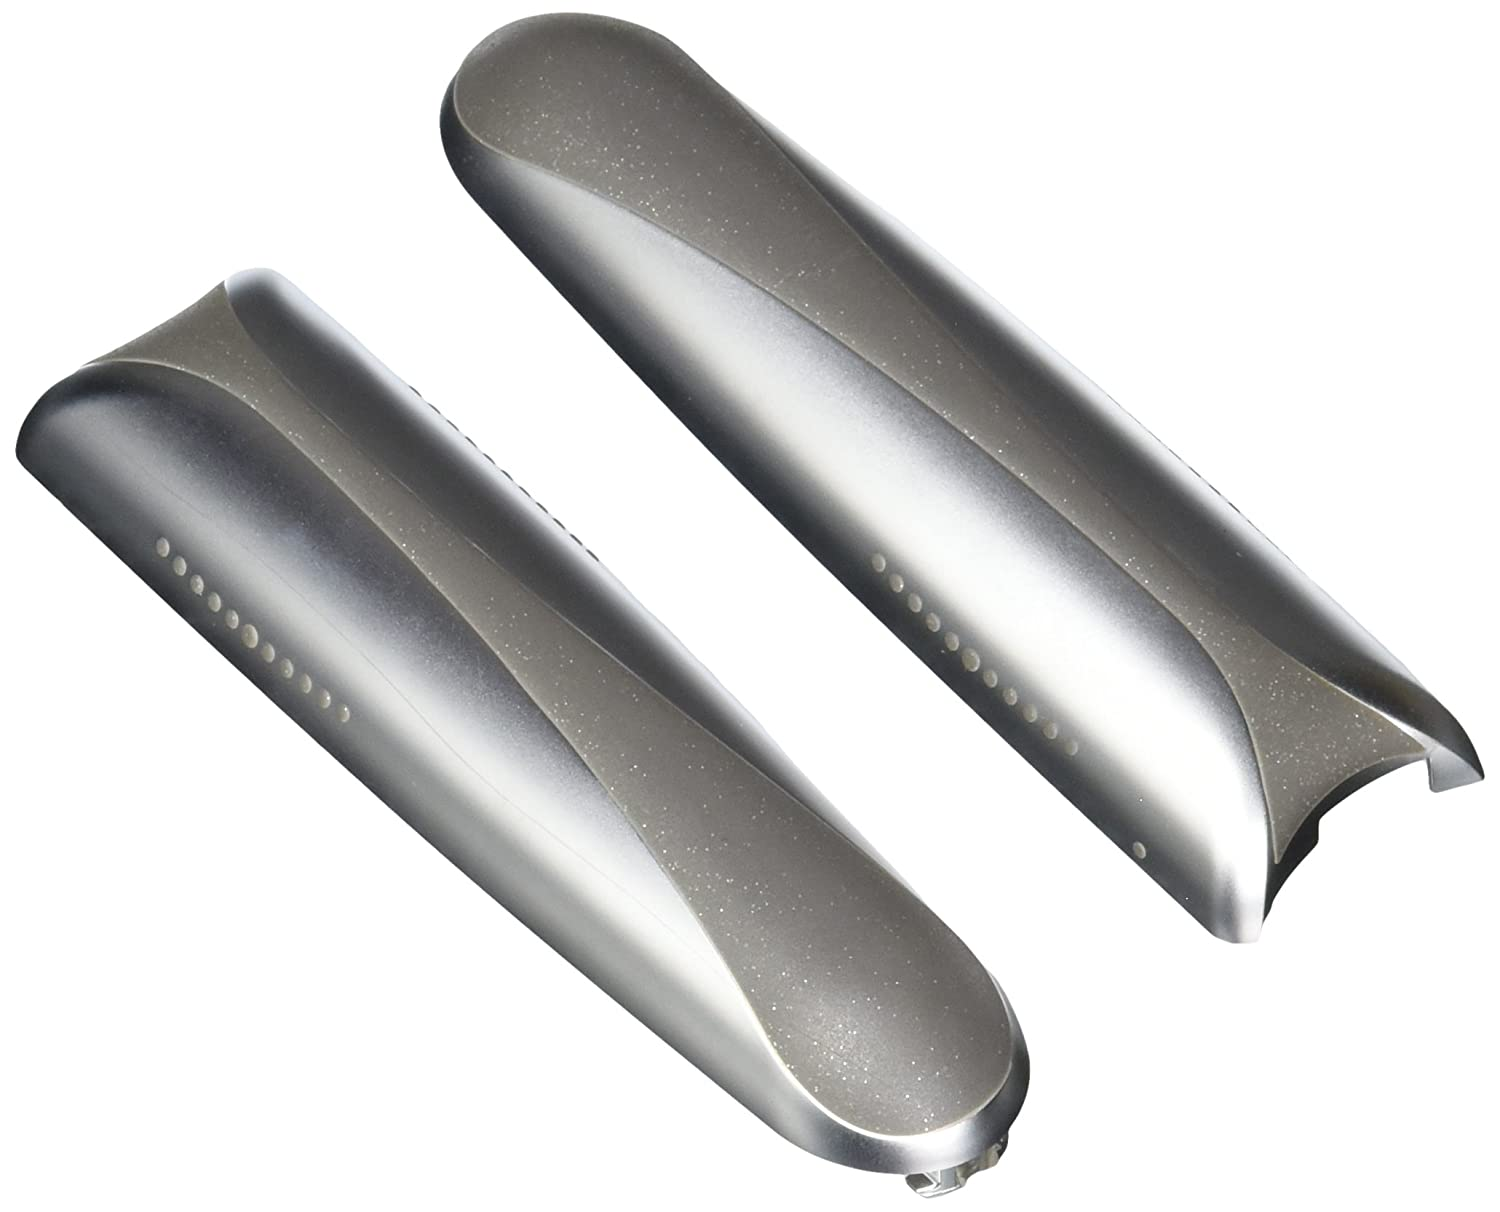 SILVER//GREY Braun 67030245 SIDE COVERS